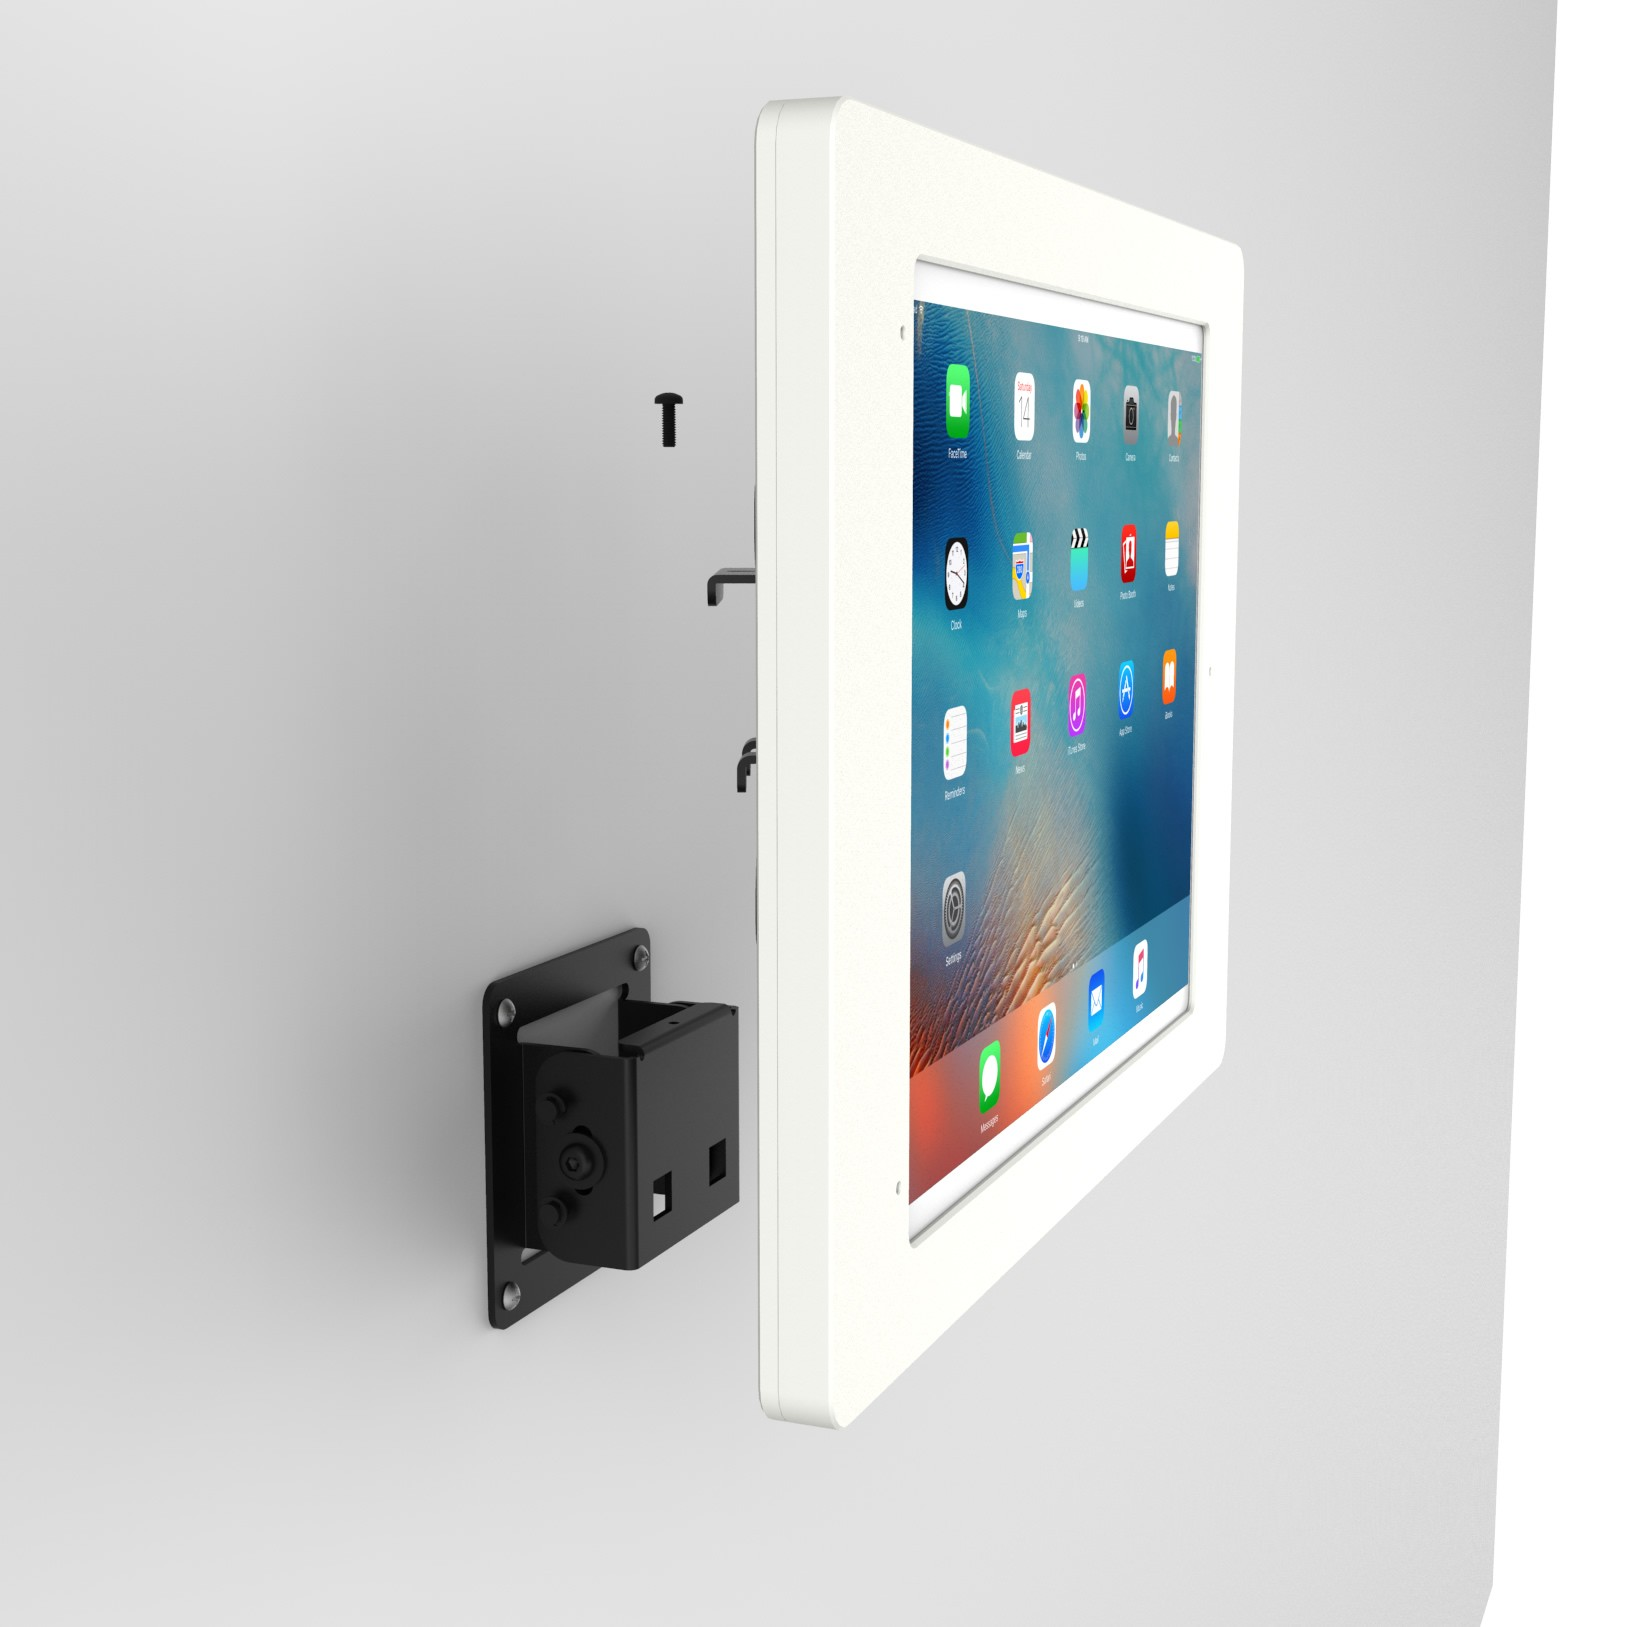 Tilting Wall12 9 Inch Ipad Pro Tablet Mount Home Button